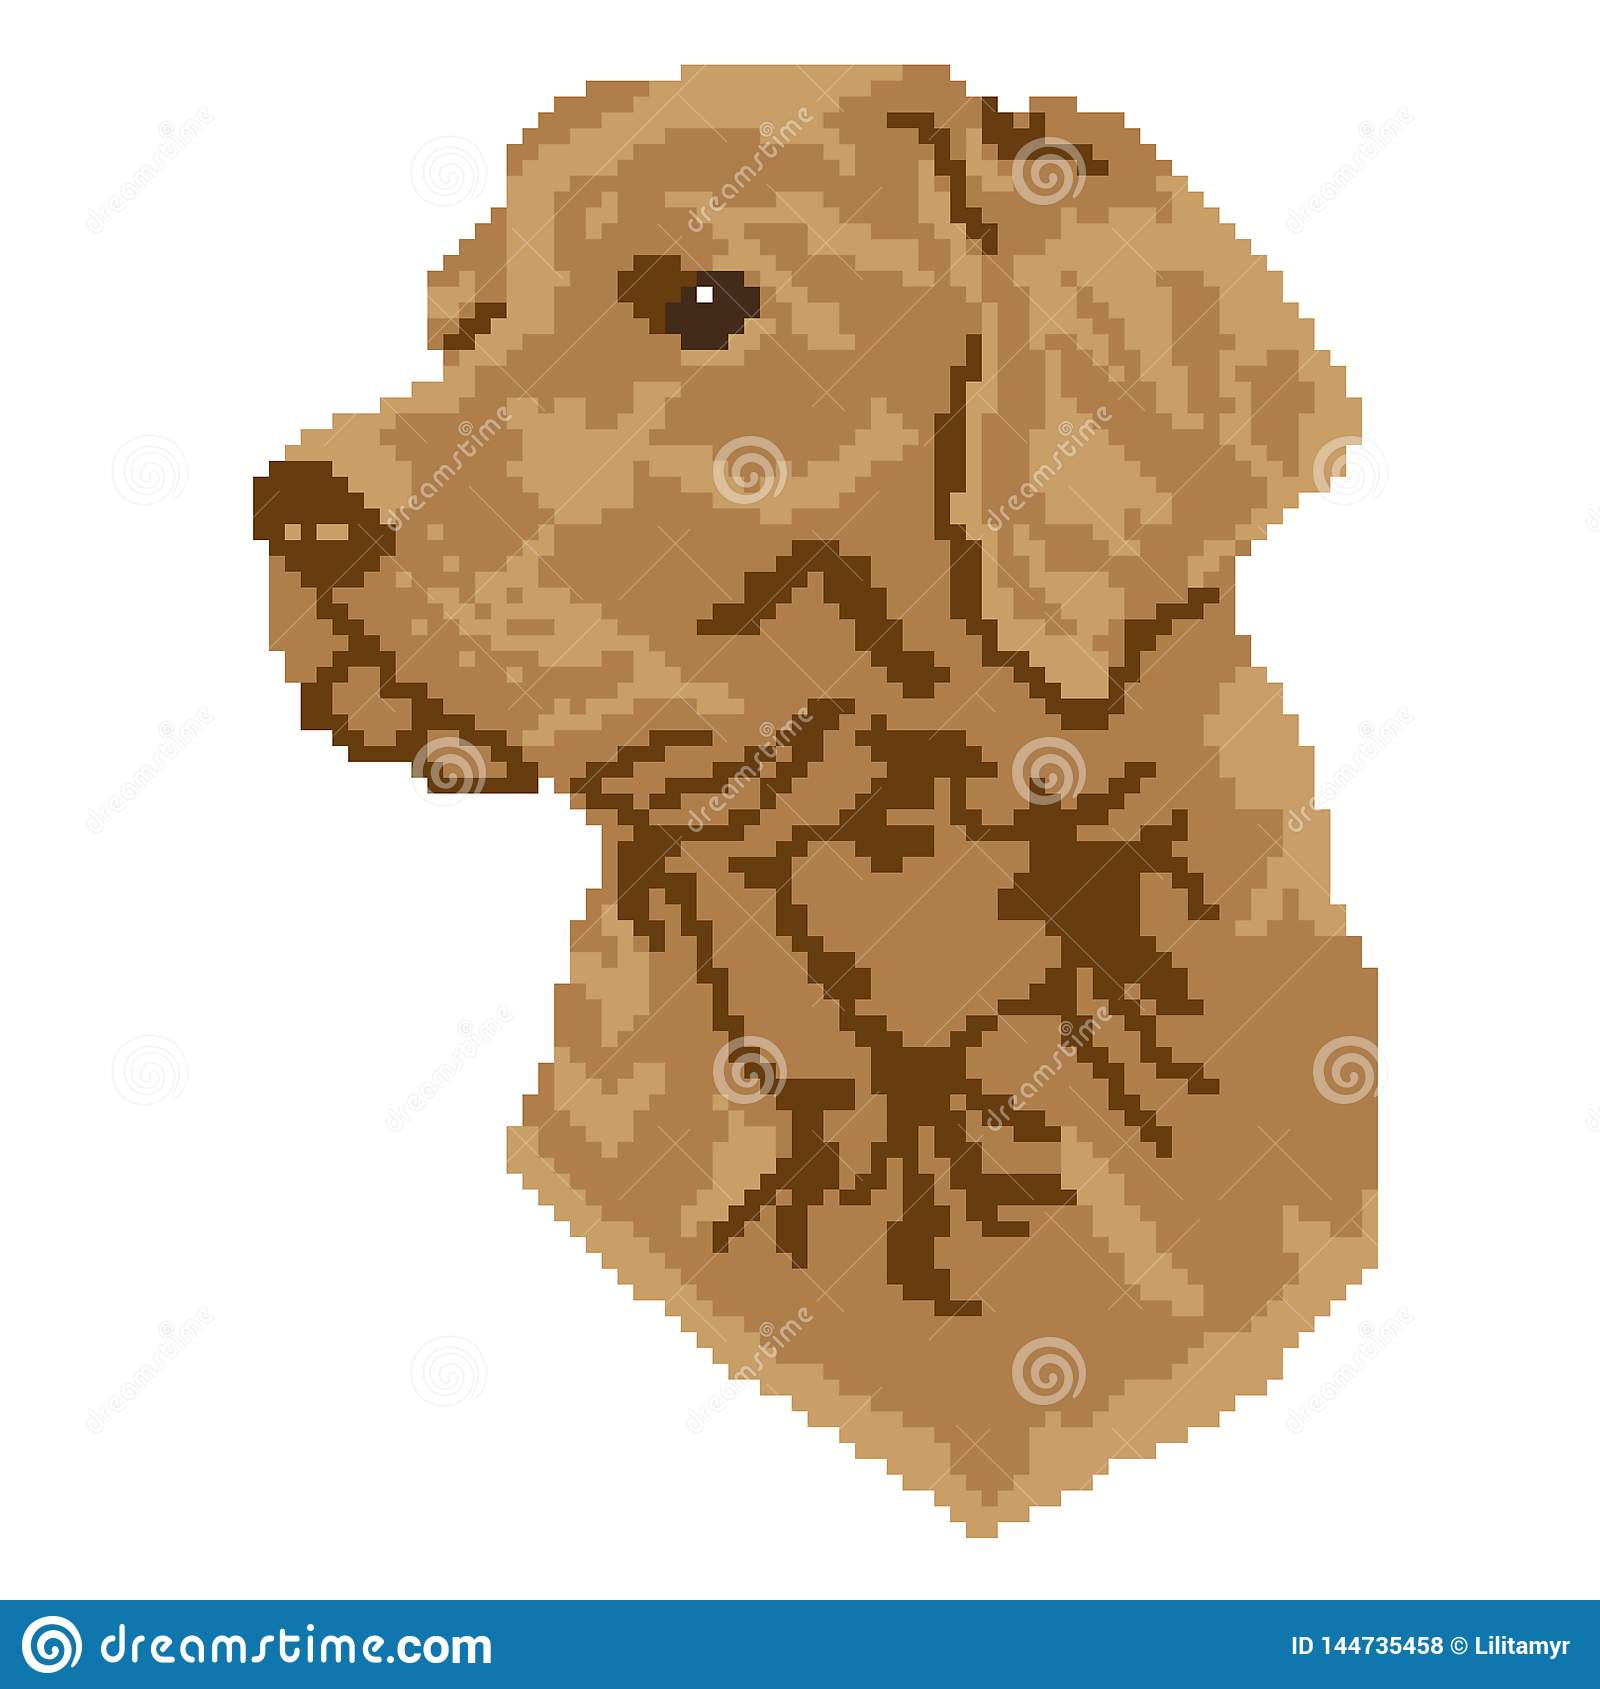 The Silhouette Of A Beige Brown Dog Breed Labrador Is A